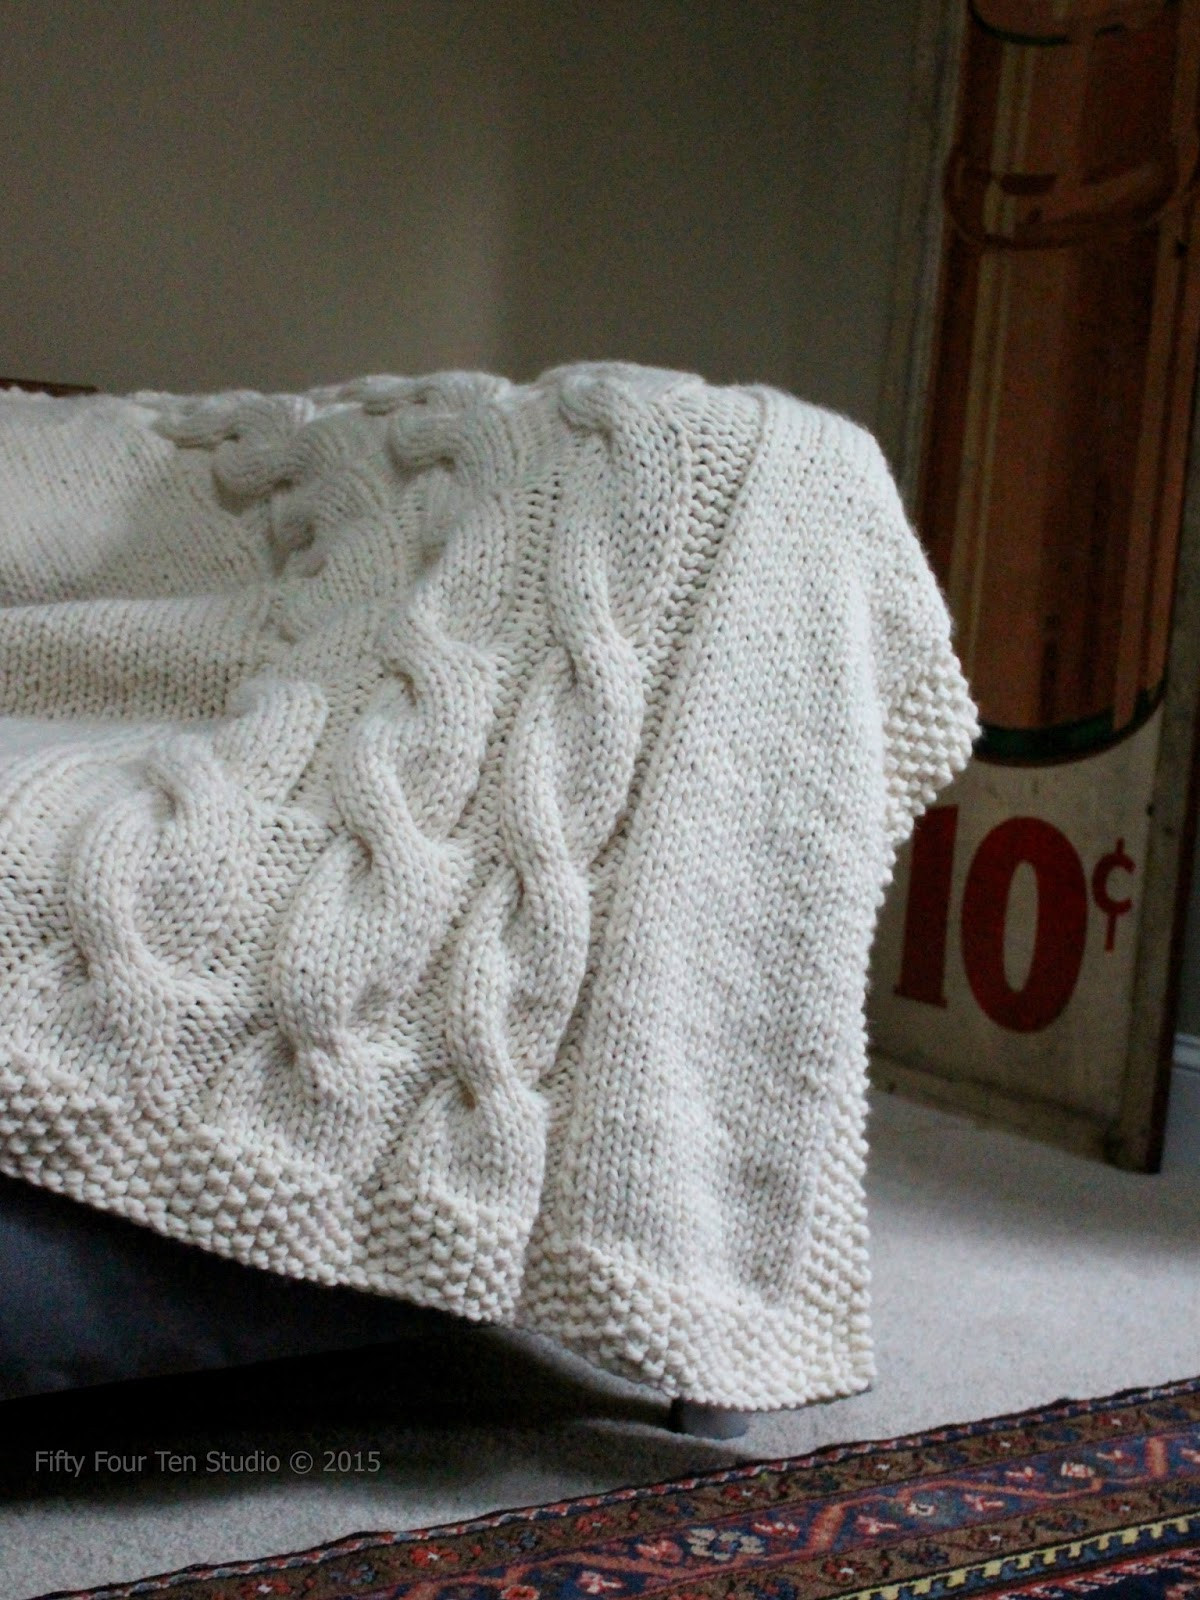 """New Fifty Four Ten Studio """"like A Sweater"""" Blanket Cable Cable Knit Sweater Blanket Of Incredible 50 Photos Cable Knit Sweater Blanket"""